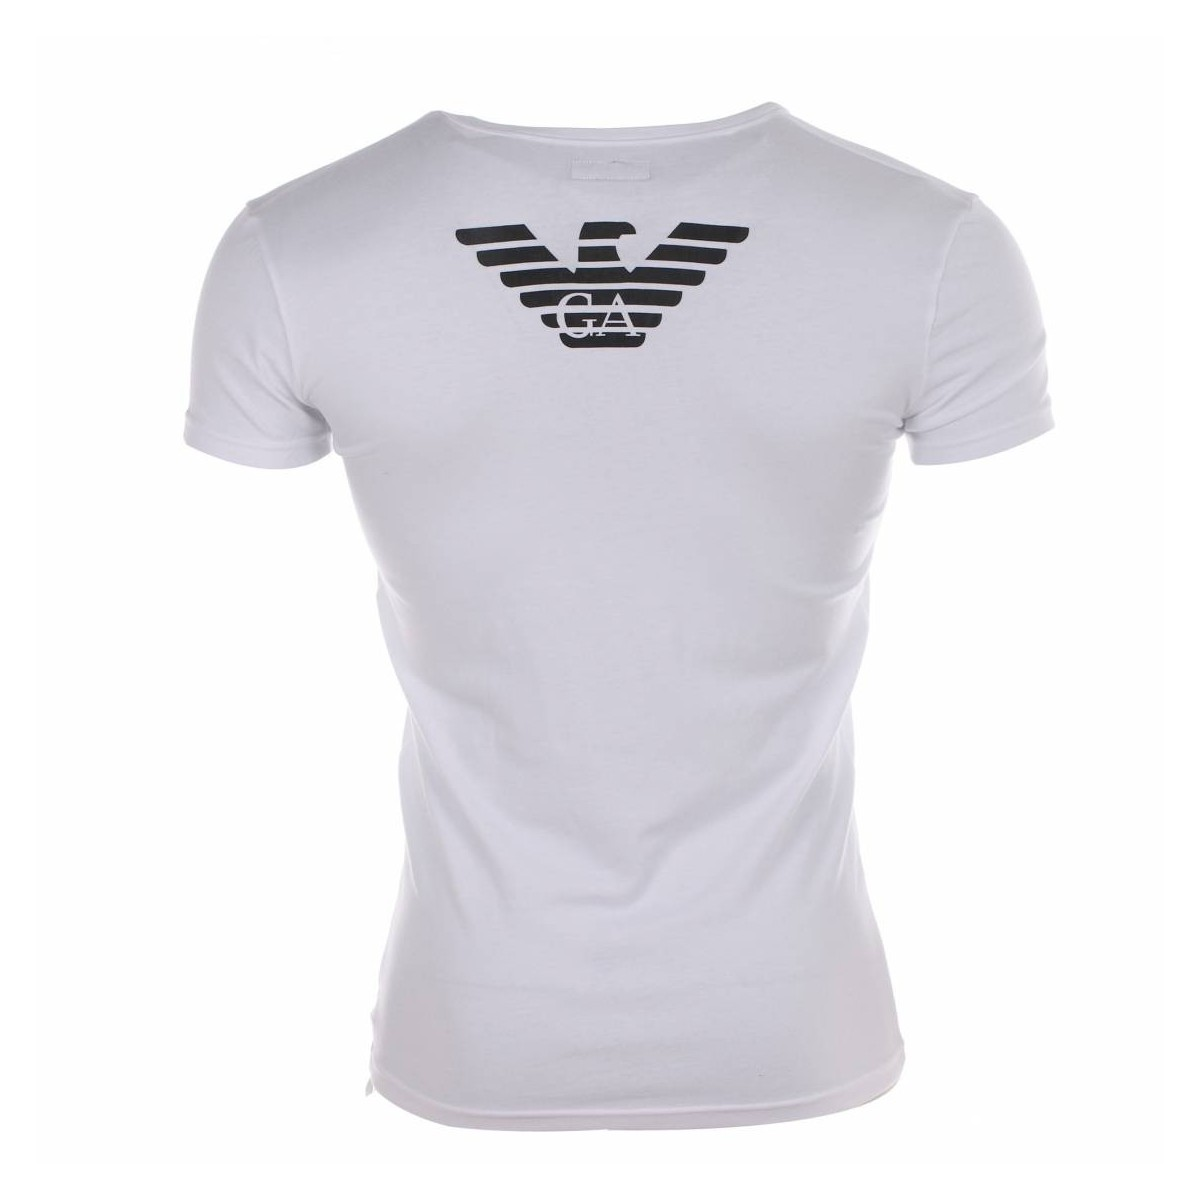 armani white tshirt eagle. Black Bedroom Furniture Sets. Home Design Ideas